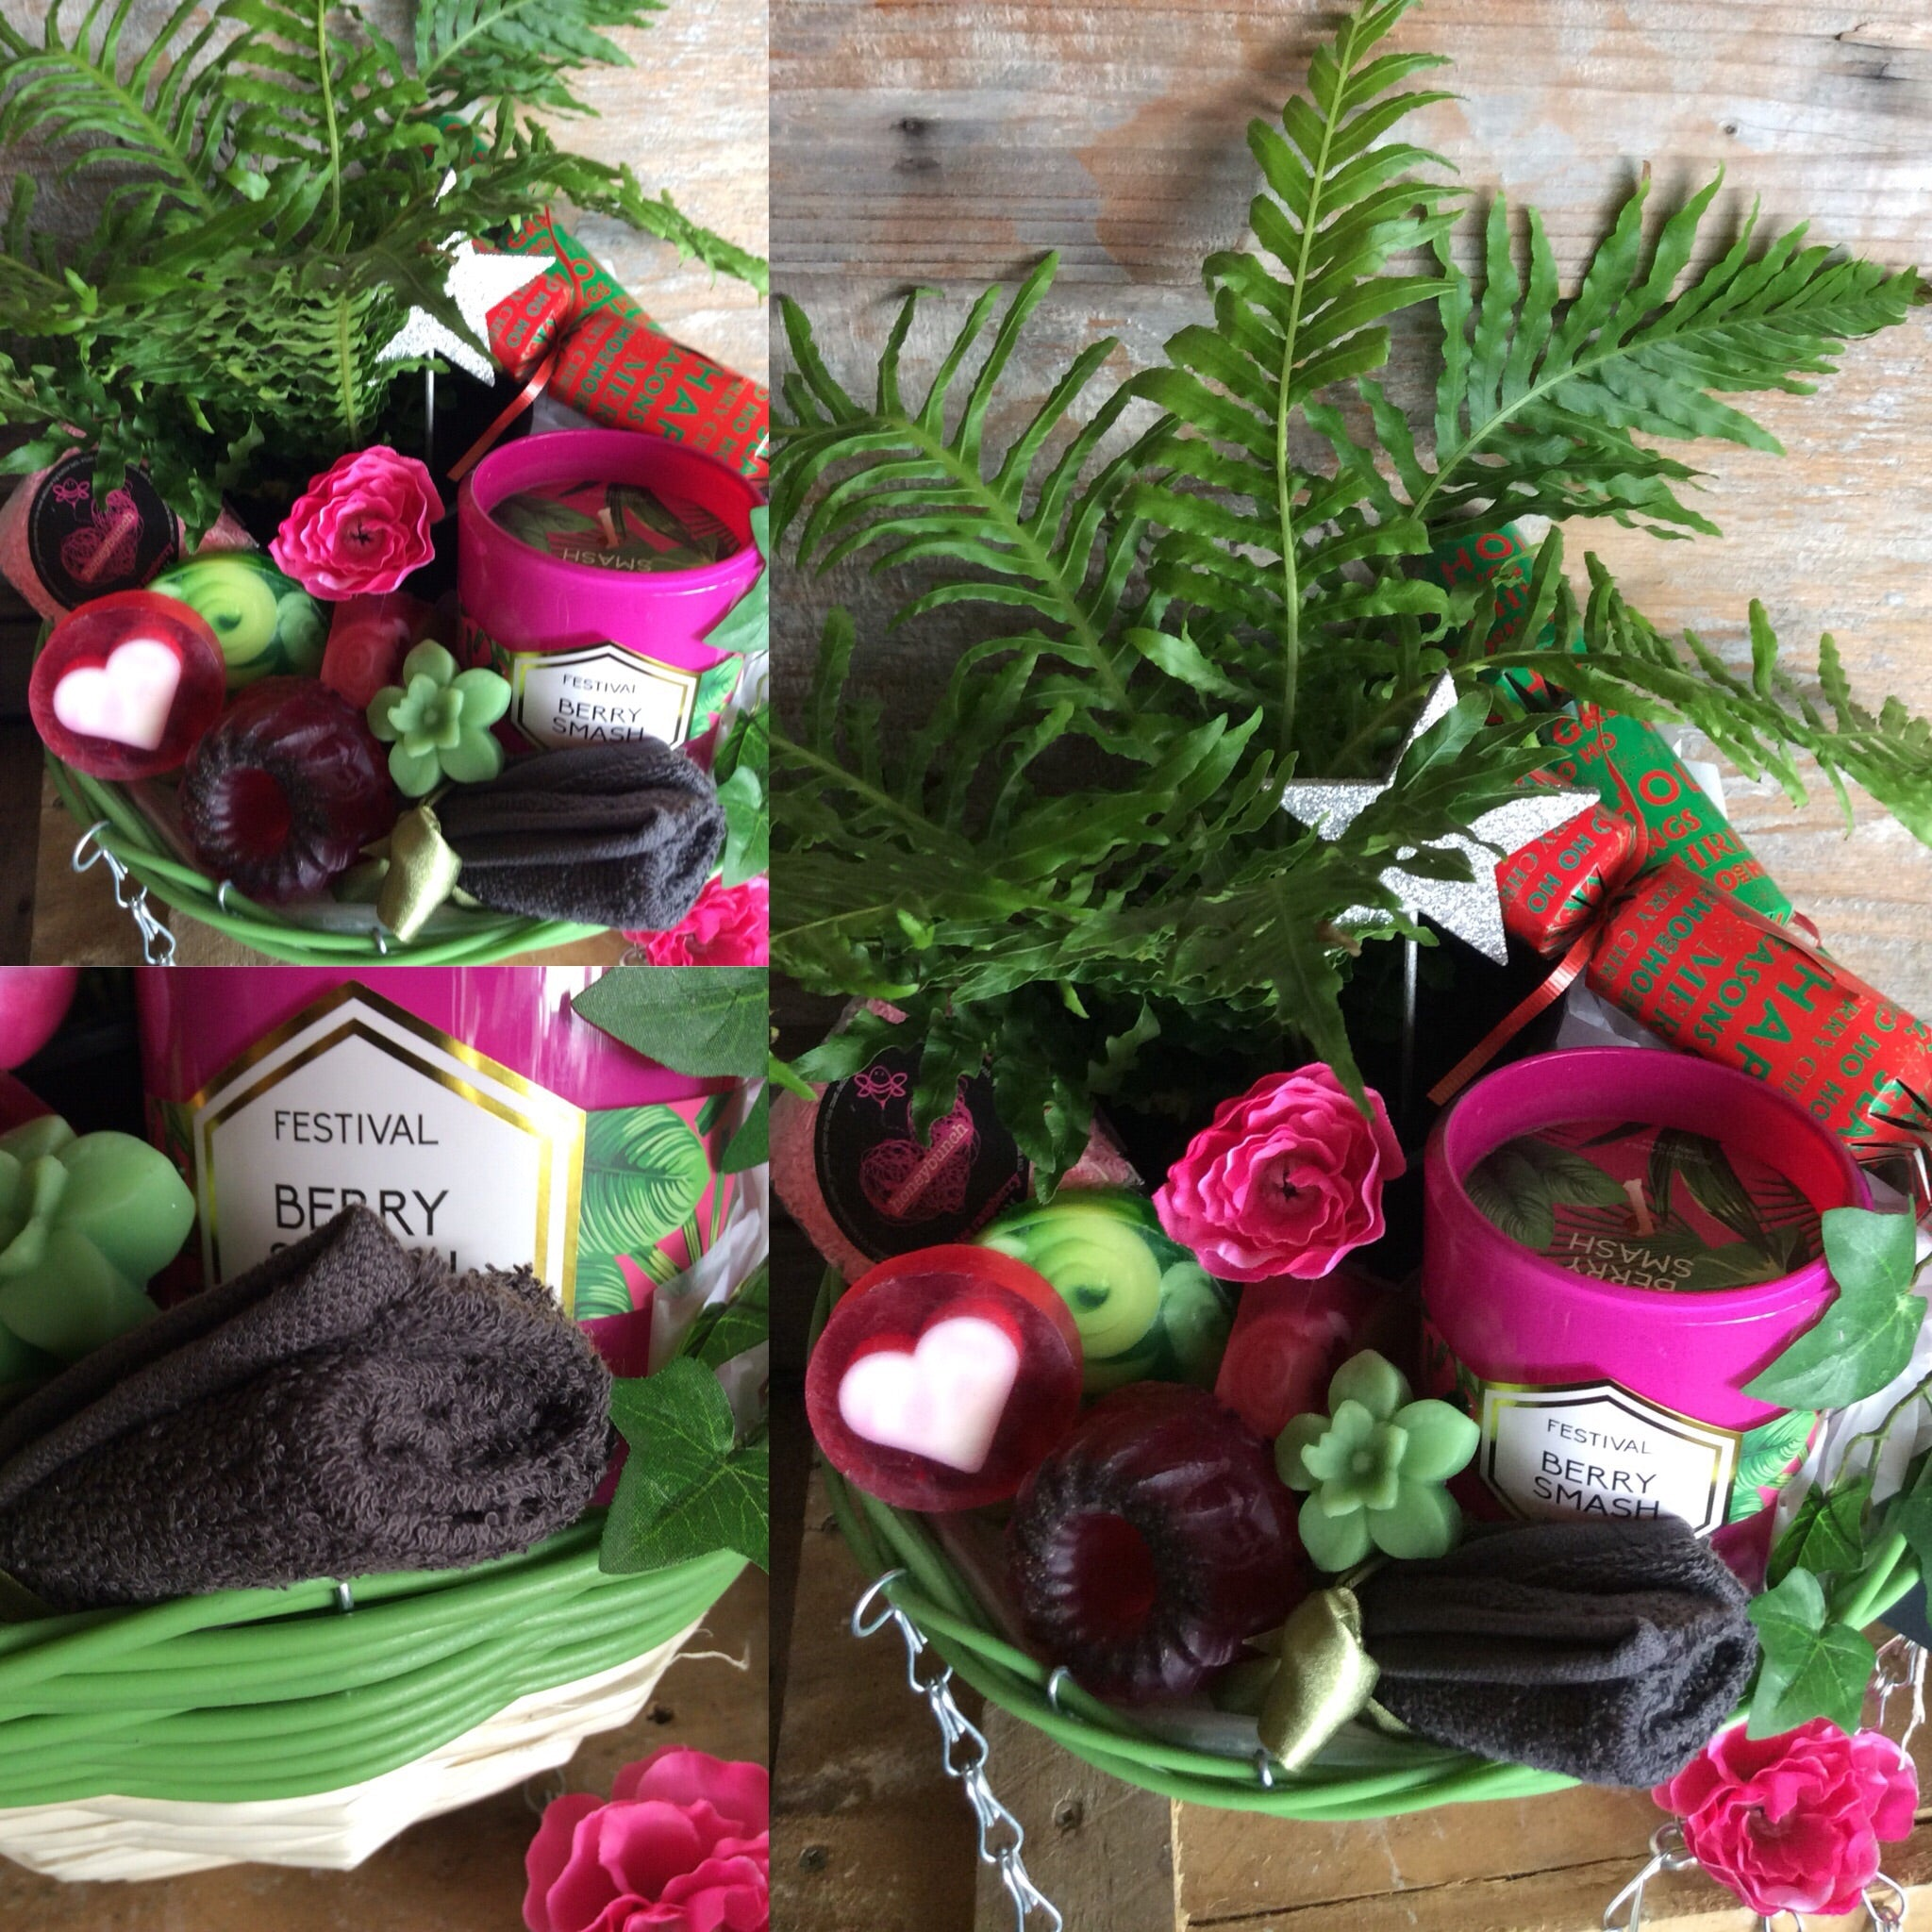 Berry merry happy Re'ferns' pamper plant hamper